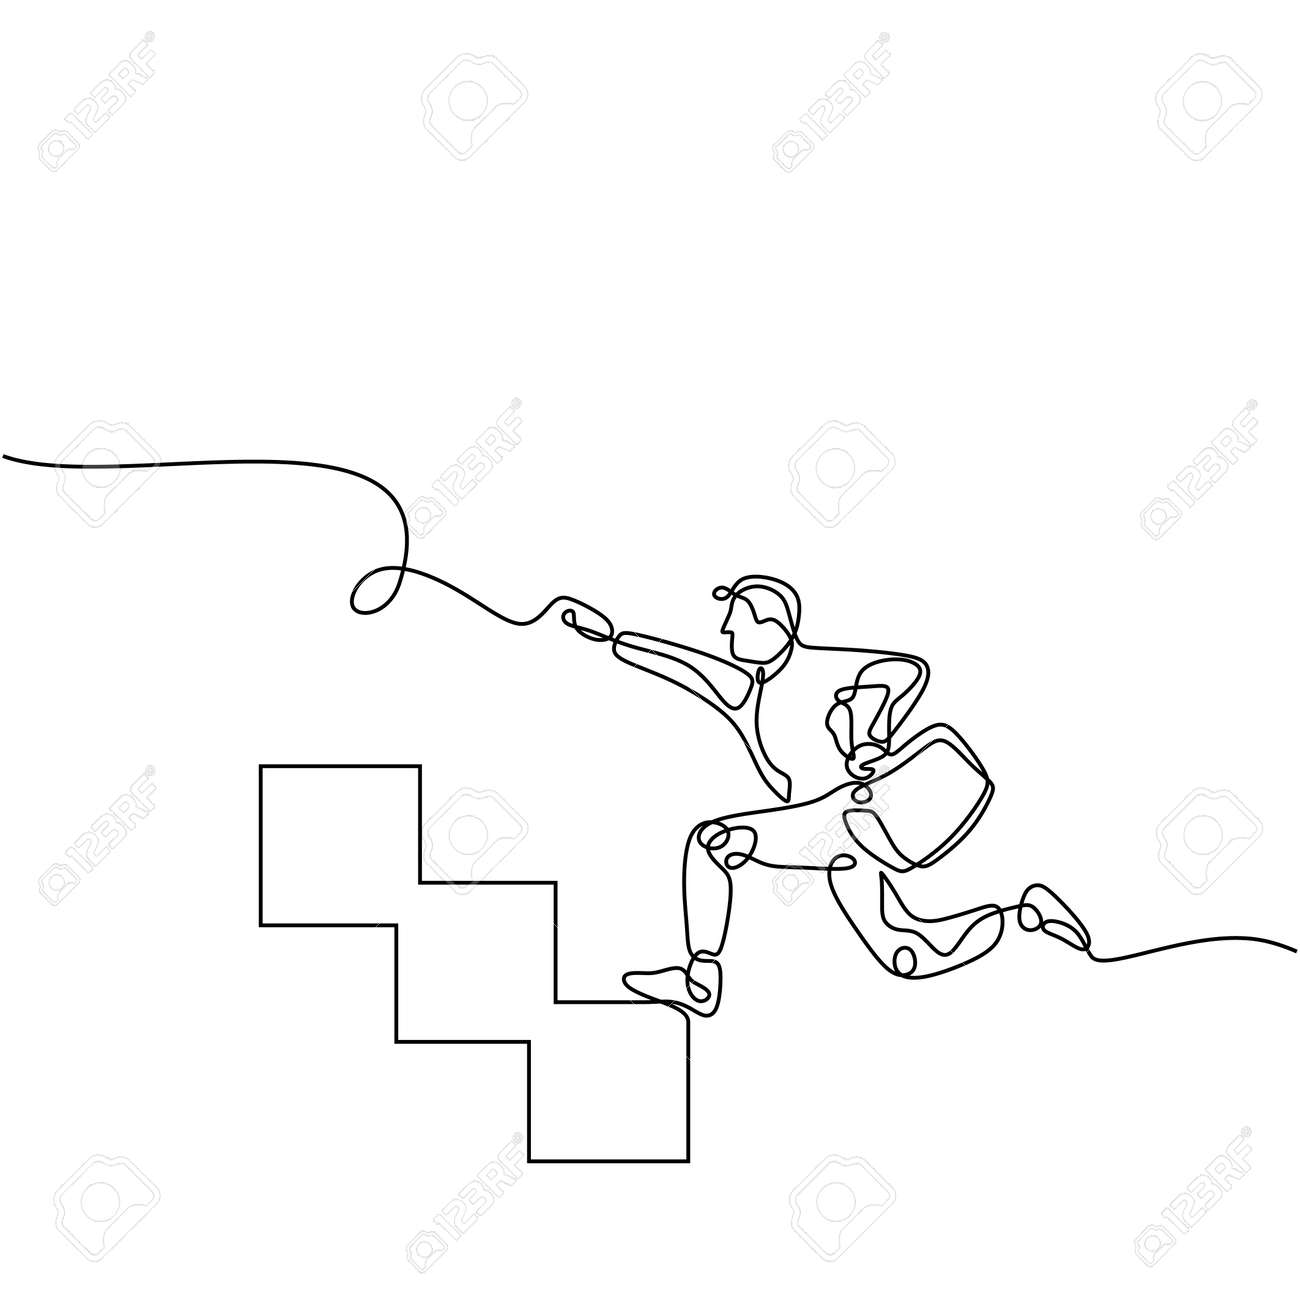 Stairway to success - continuous line drawing, Man running fast up stairs to reach his goals.Metaphor business success and boost personal career. - 173207198